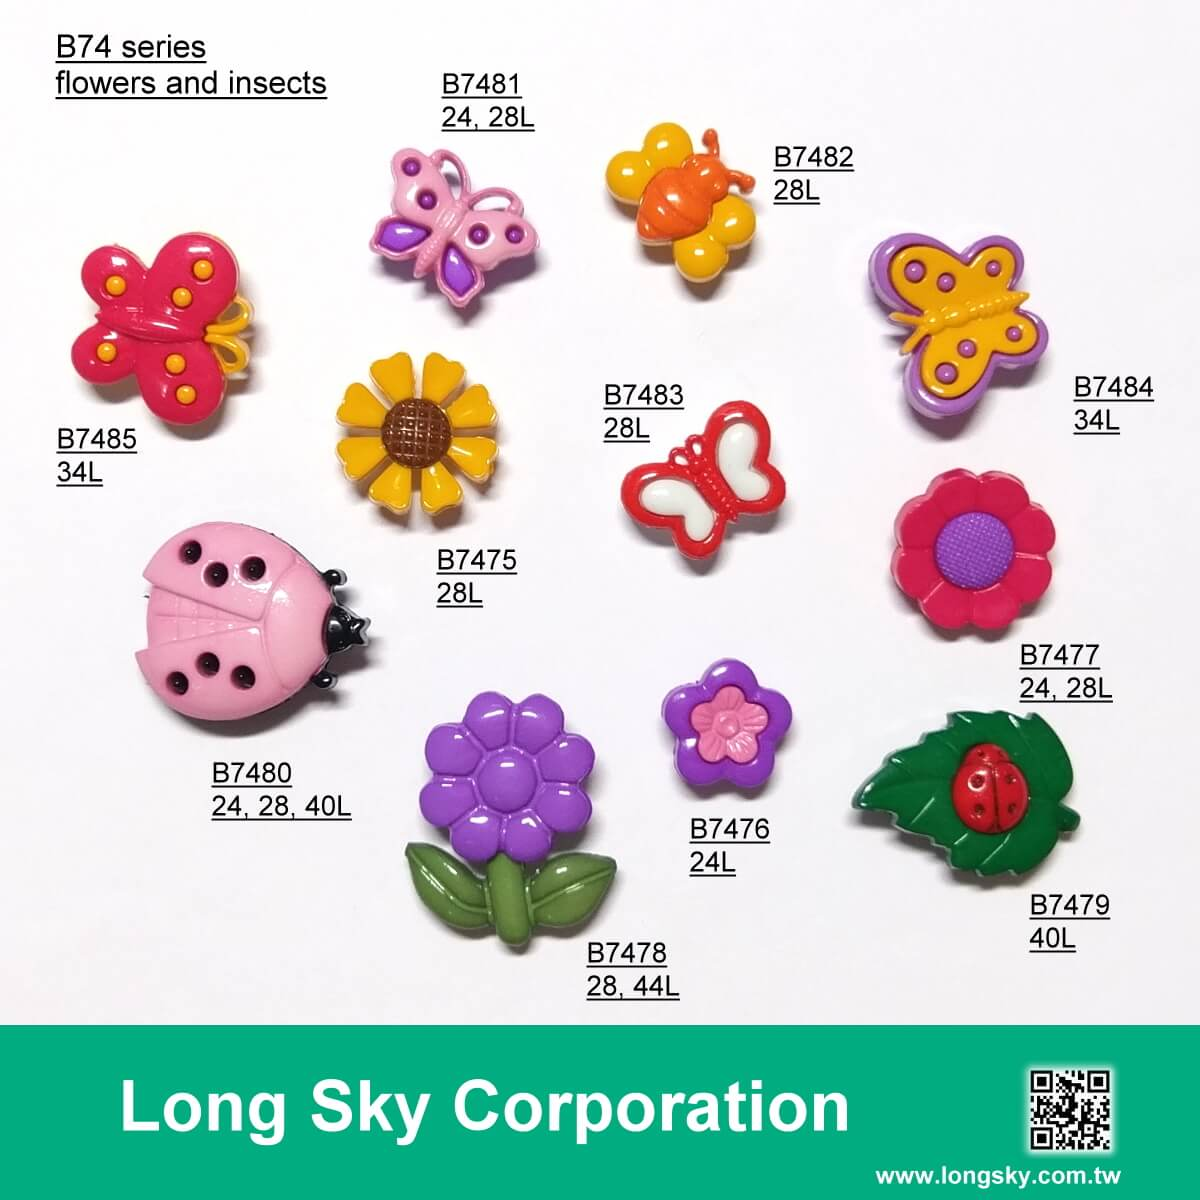 (B74-4-1) Cute kids buttons in butterfly, lady bug, bee, insect and flower shapes